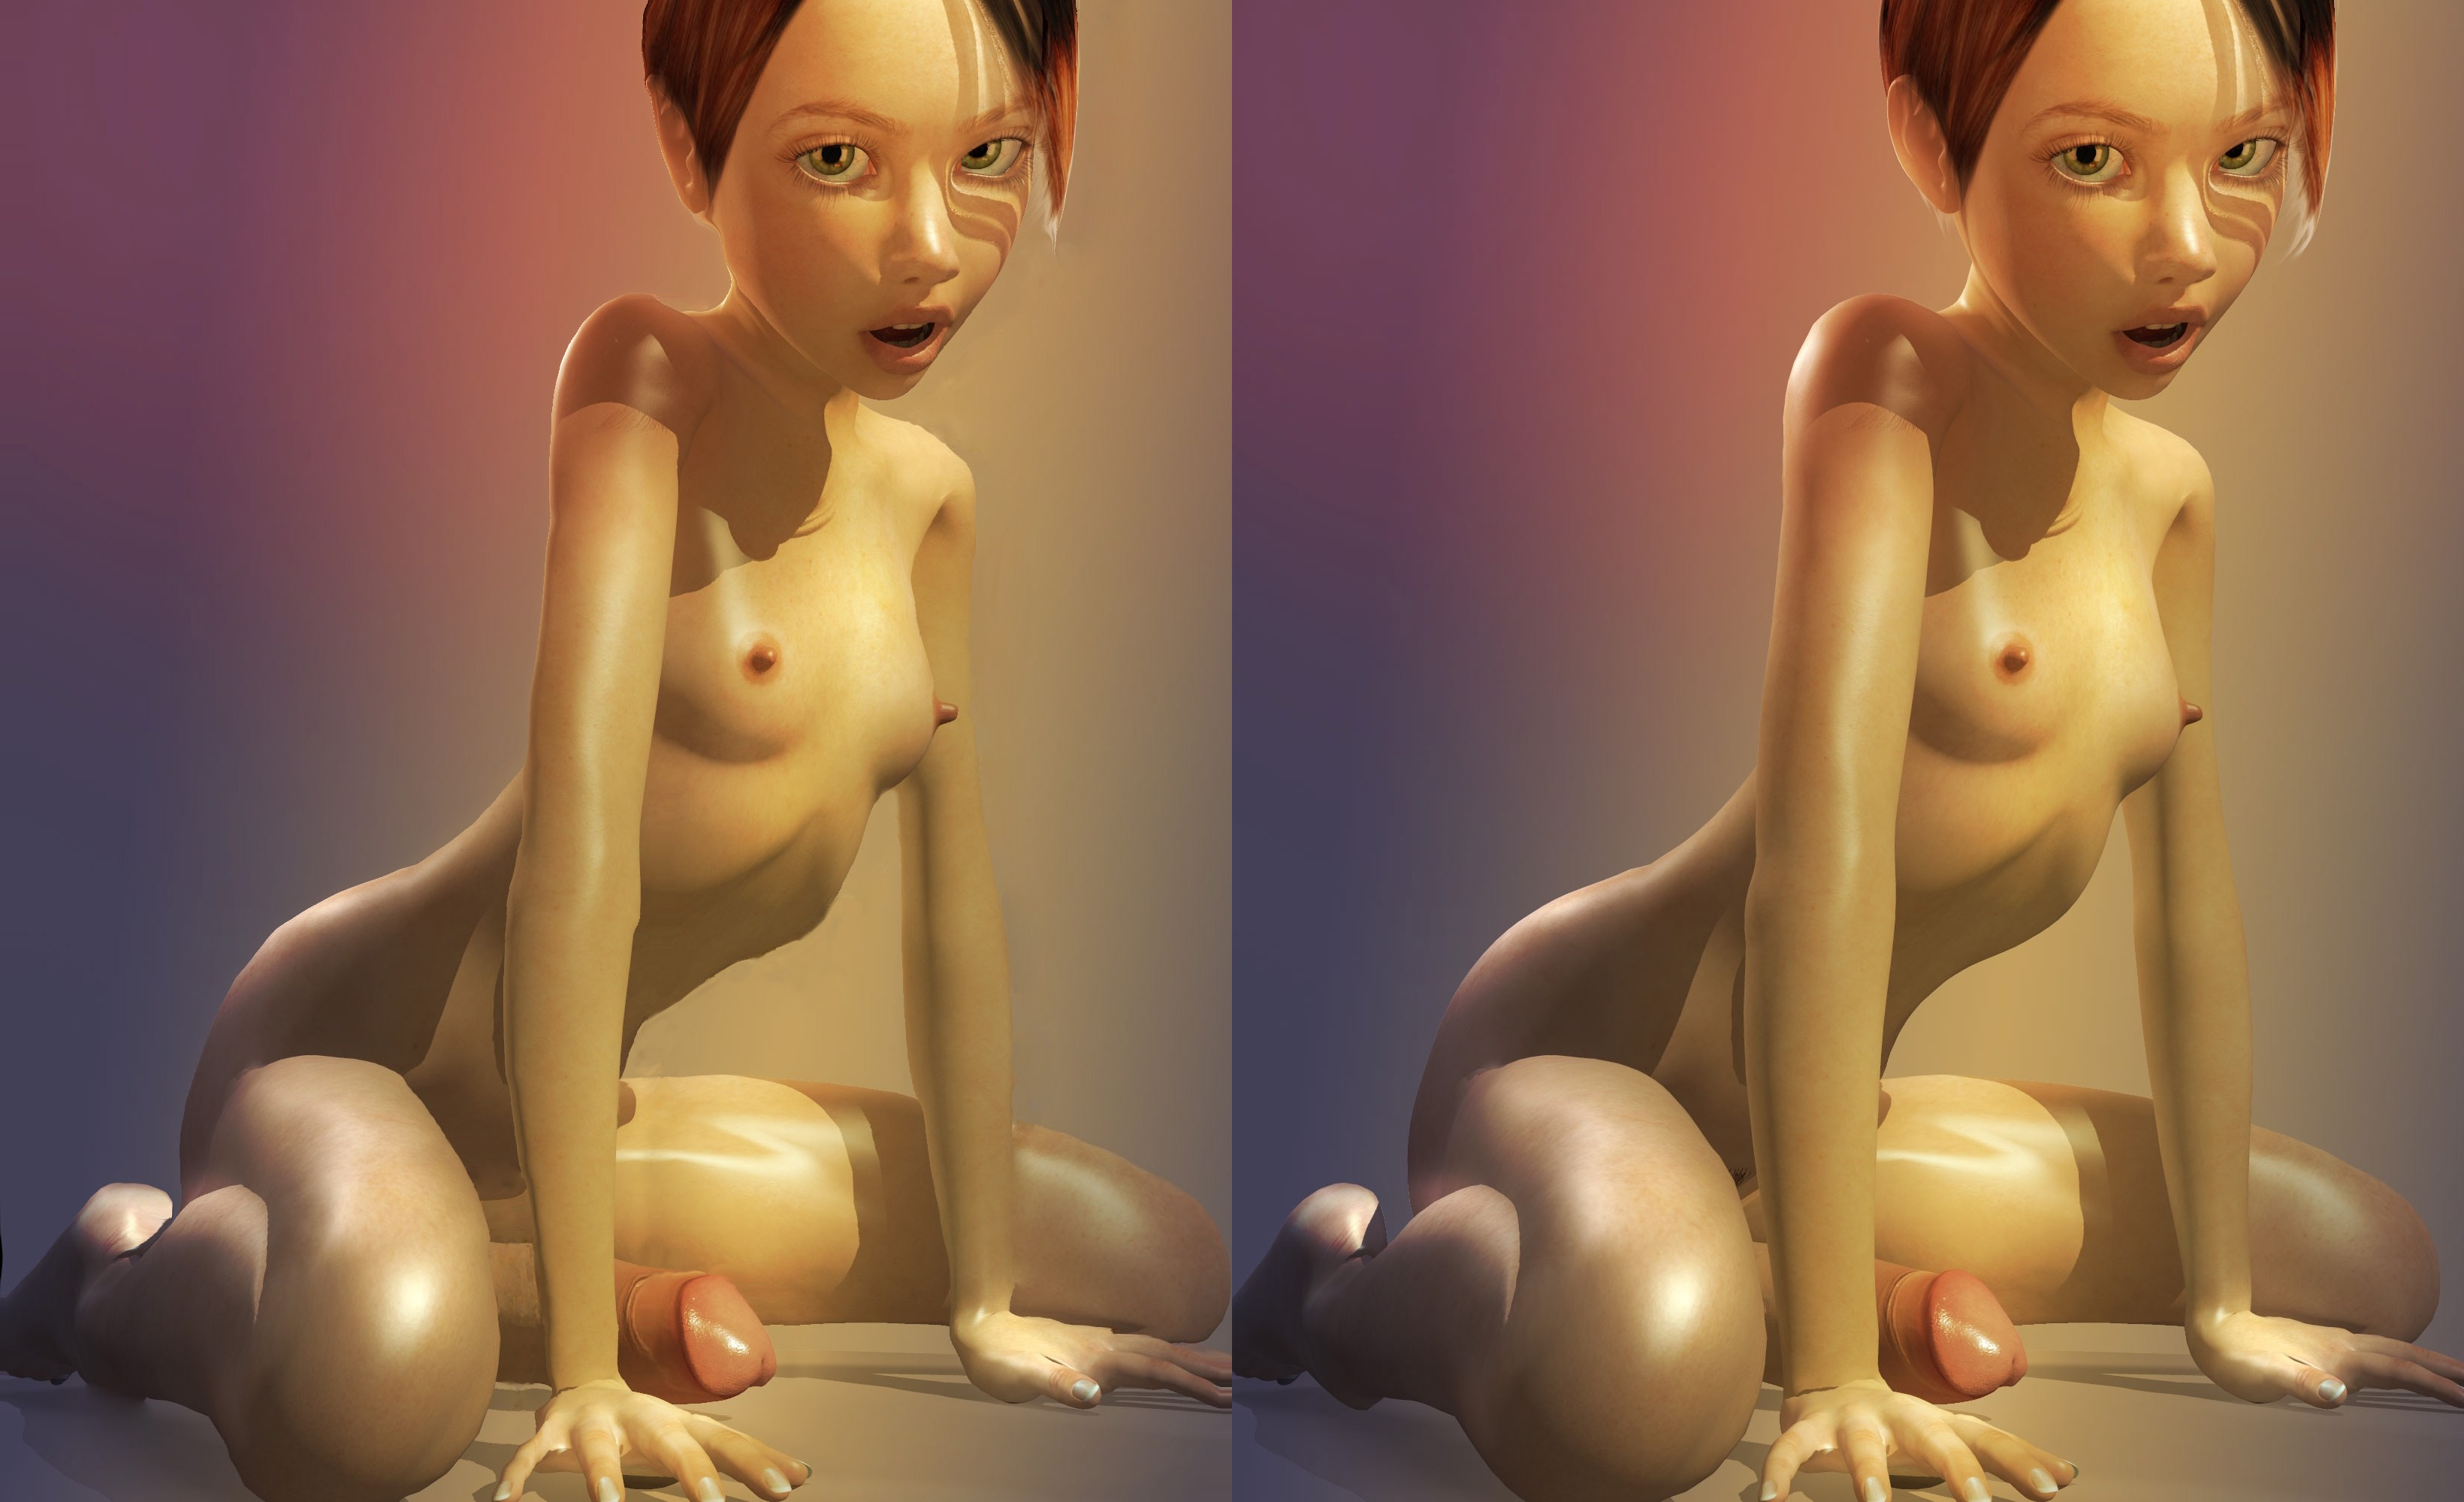 3d stereograms boobs sex images